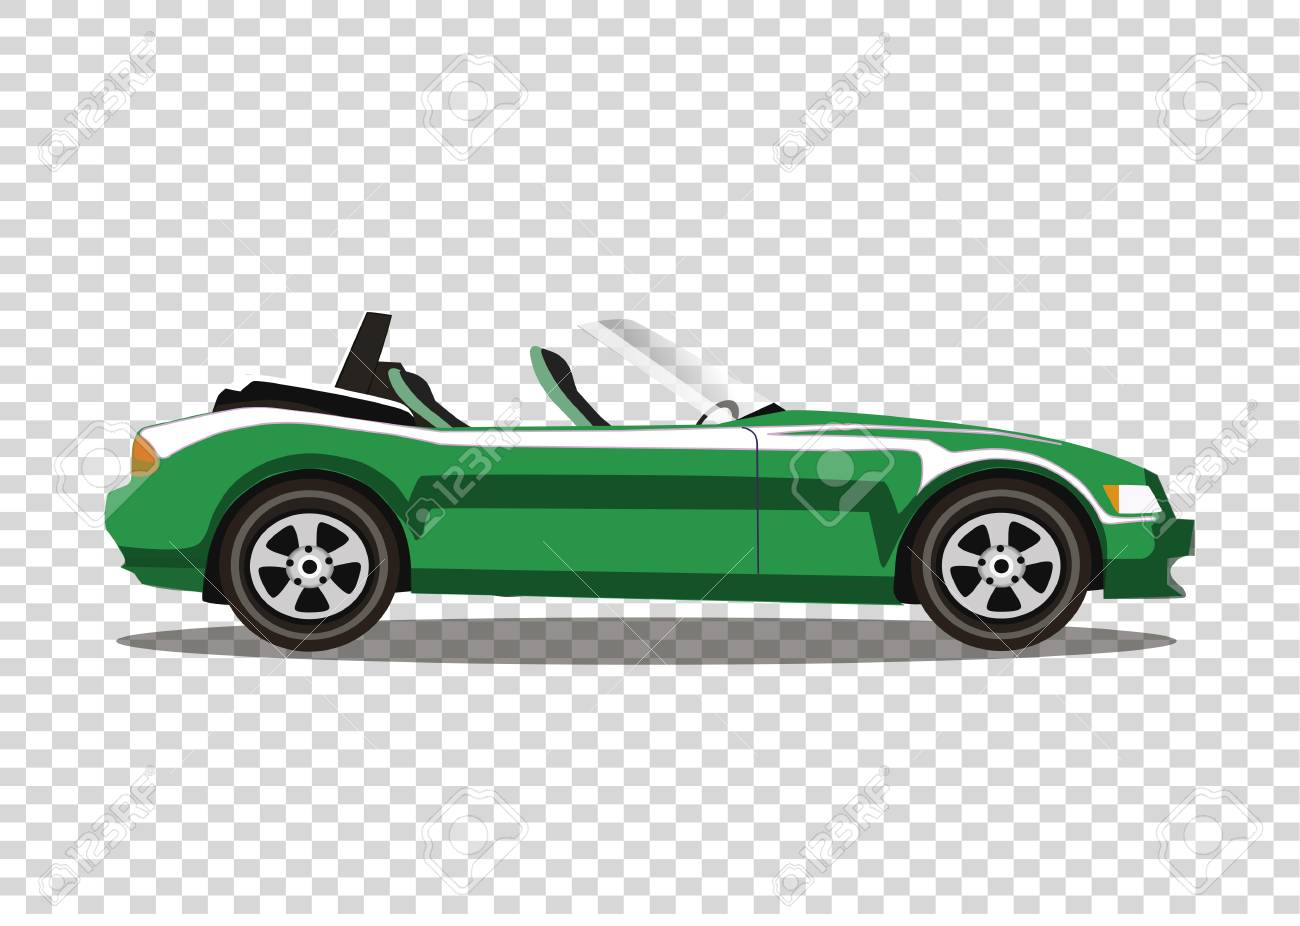 Green modern cartoon cabriolet car isolated on transparent background.